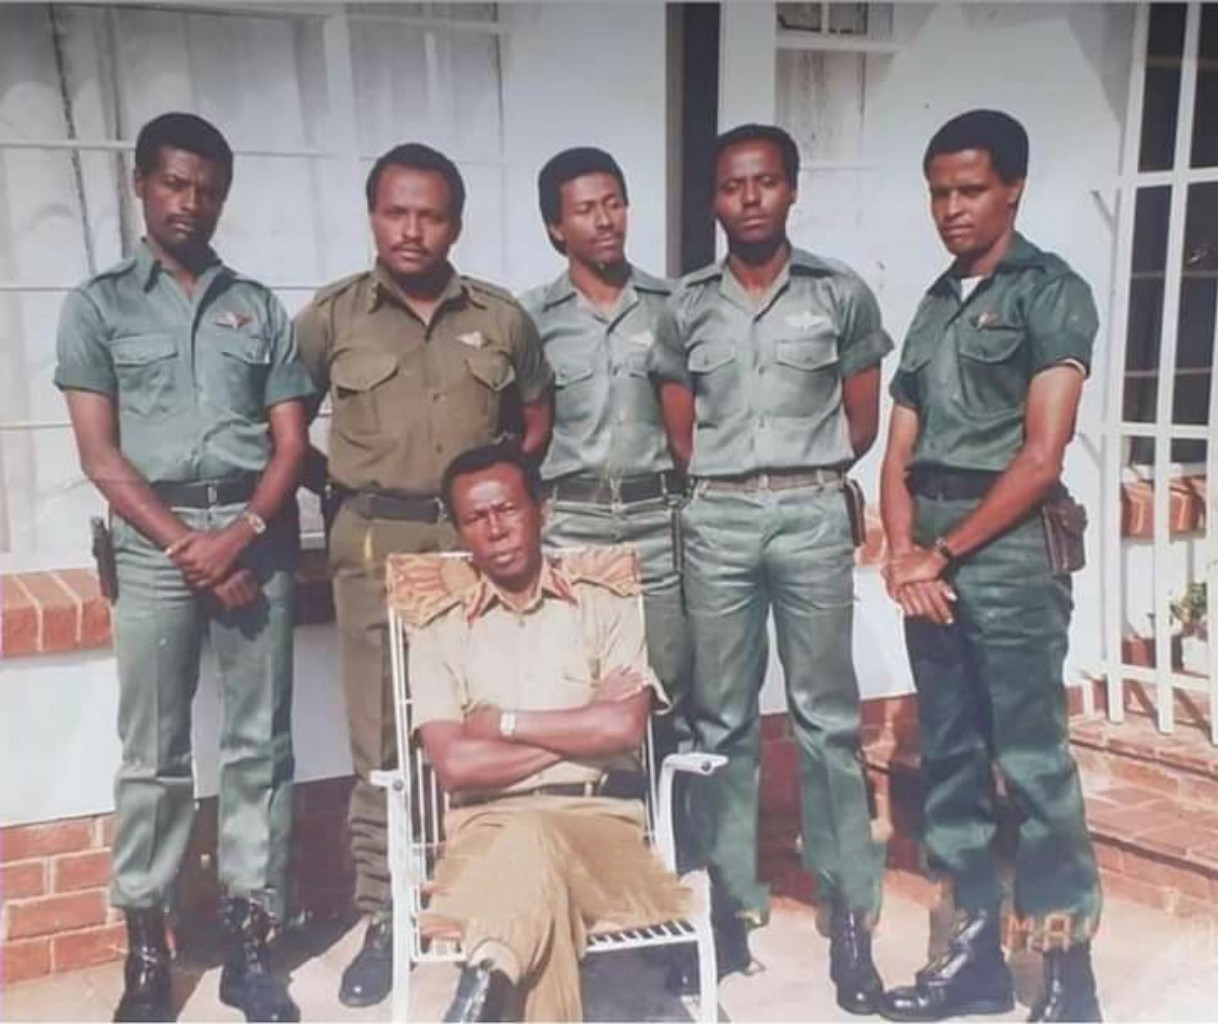 MENGISTU HAILE MARIAM (EX-PRES.) GETTING AWAY WITH MURDER!(1) ARE THE UN AND THE INTERNATIONAL CRIMINAL COURT (ICC) ALIVE?